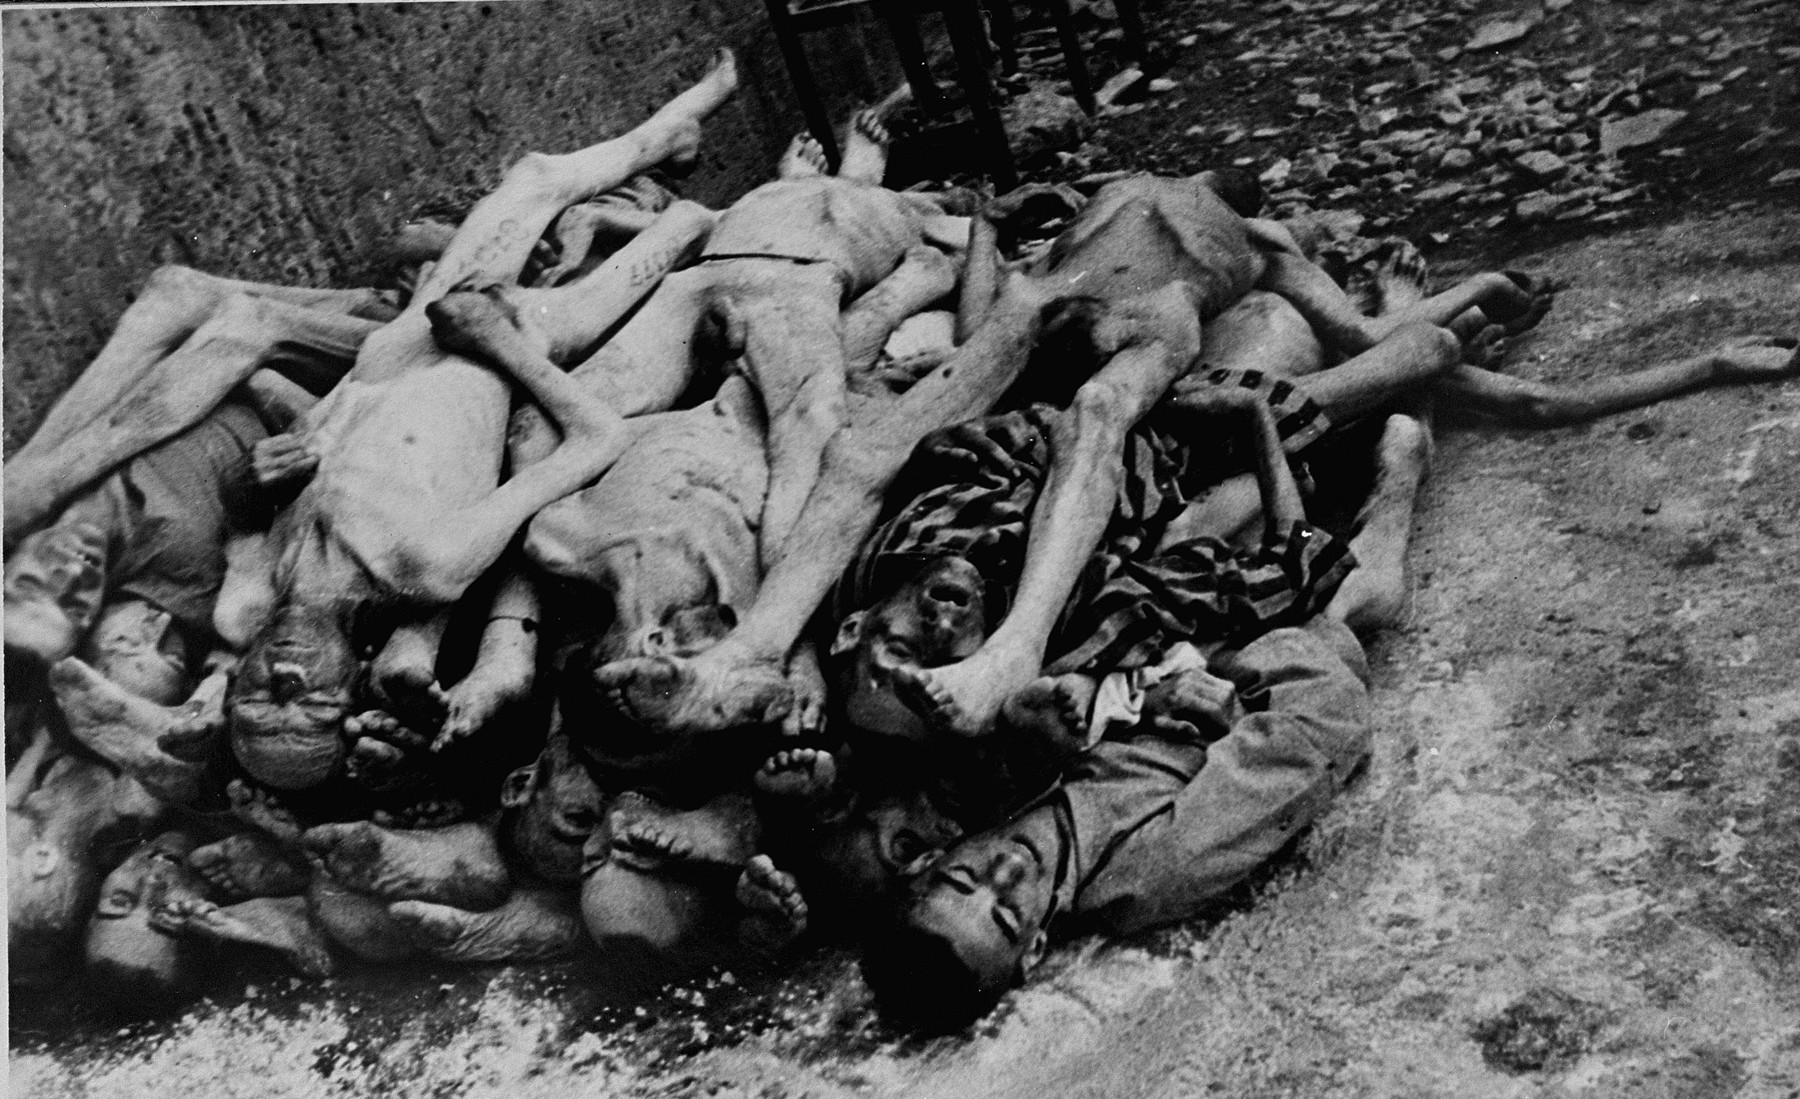 Corpses stacked behind the crematorium in Buchenwald.